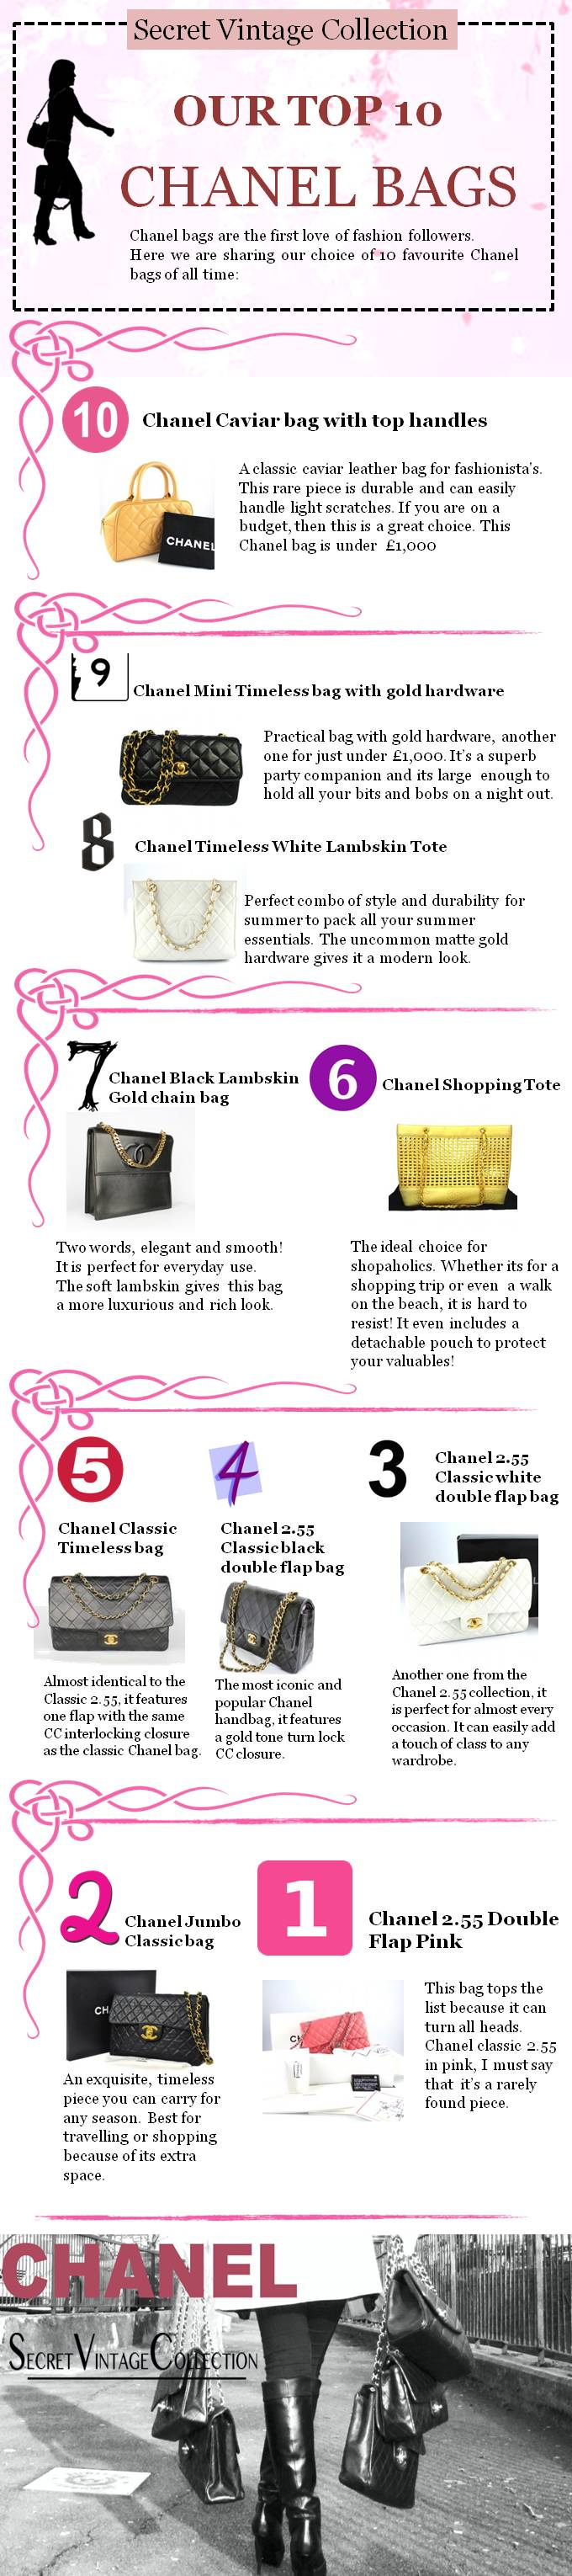 Top 10 CHANEL BAGS